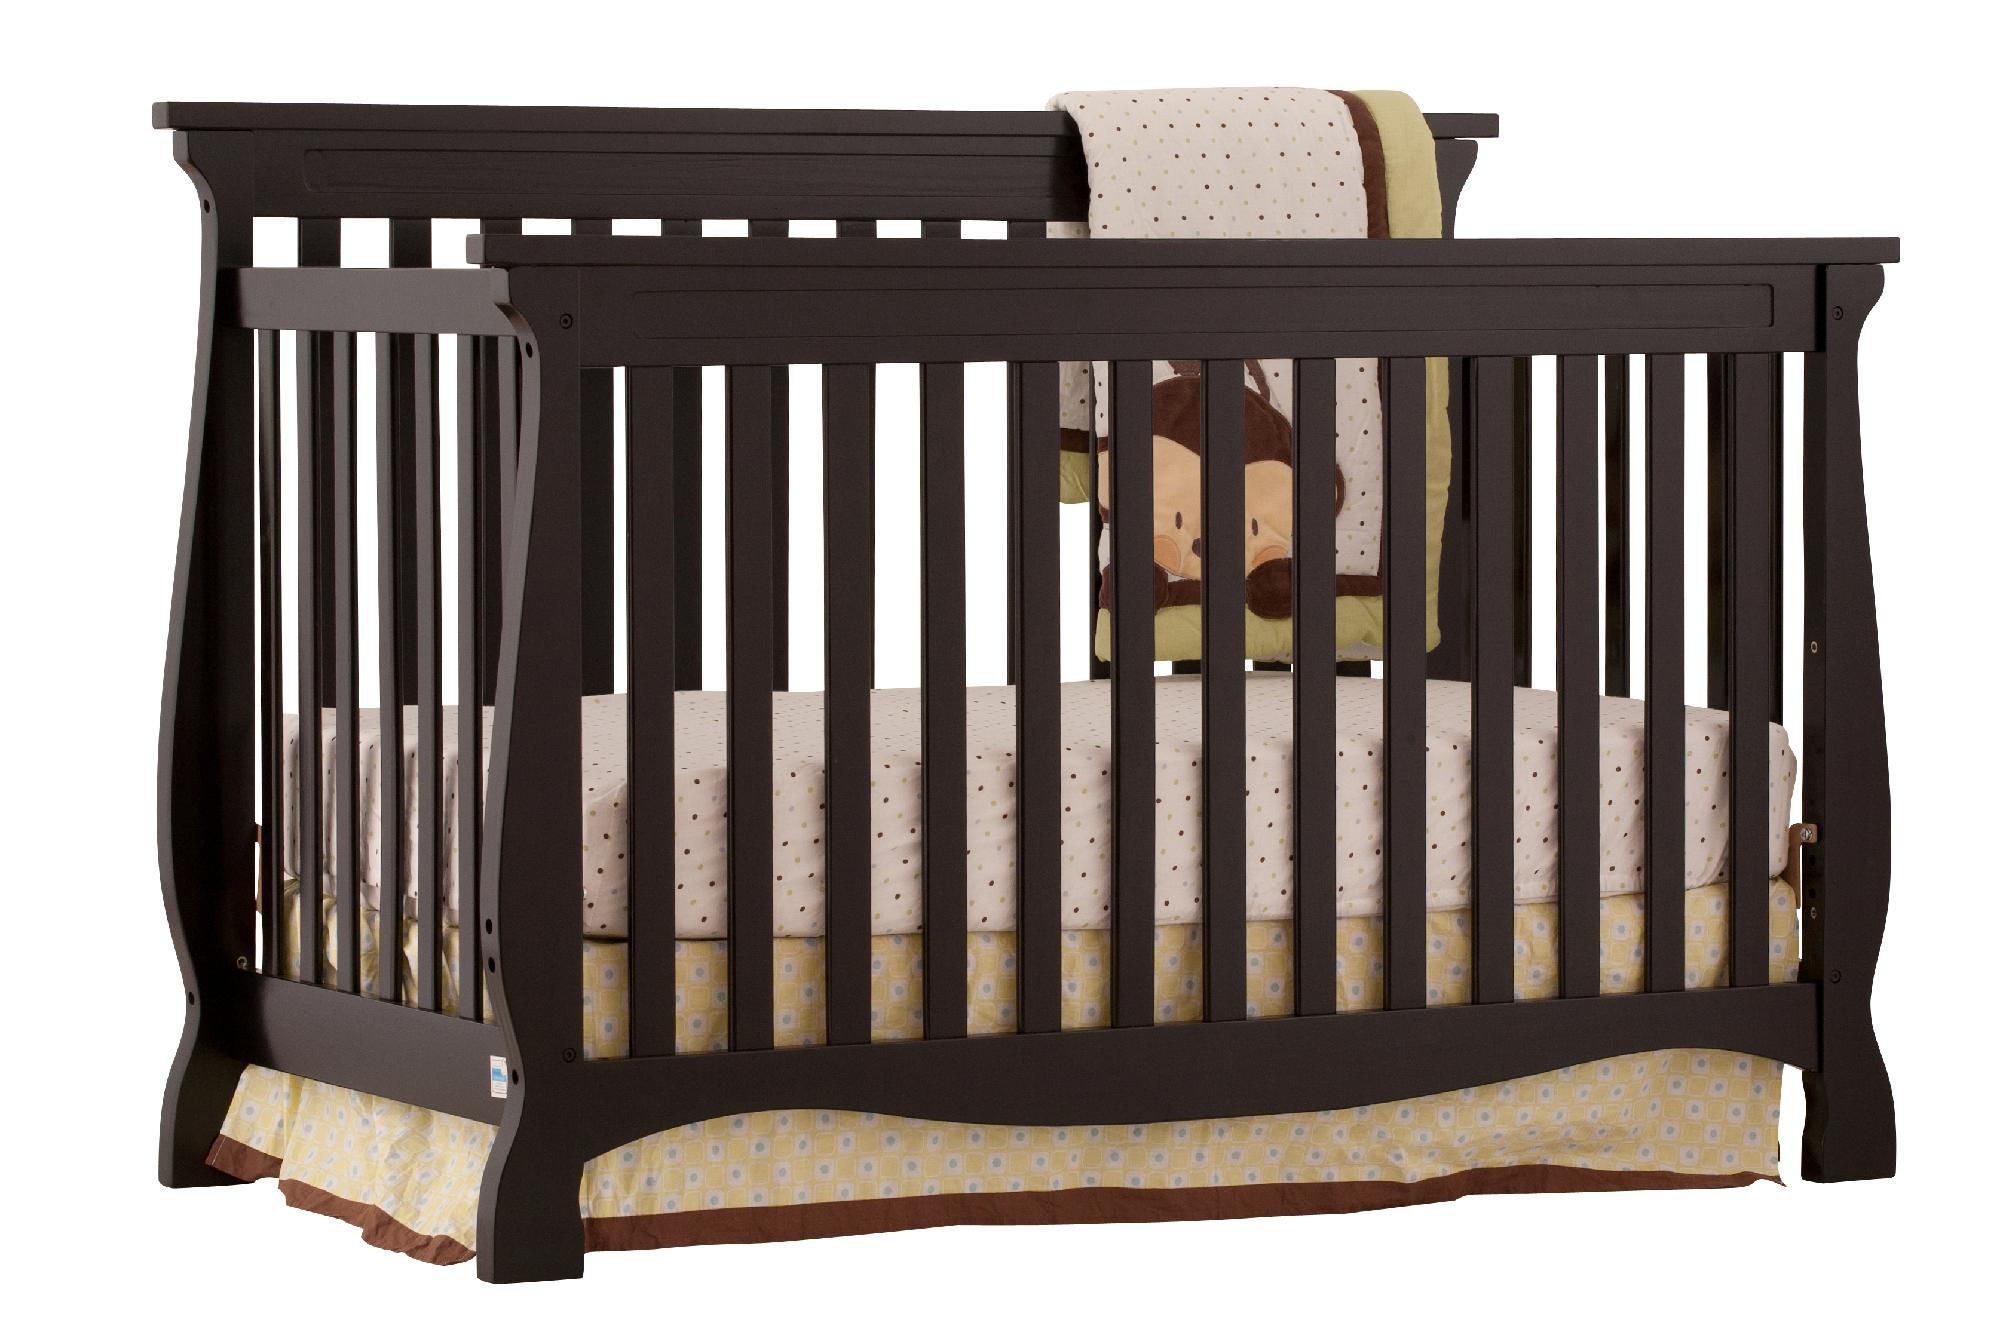 Stork Craft Carrara 4 in 1 Fixed Side Convertible Crib - Black                                                                   at mygofer.com